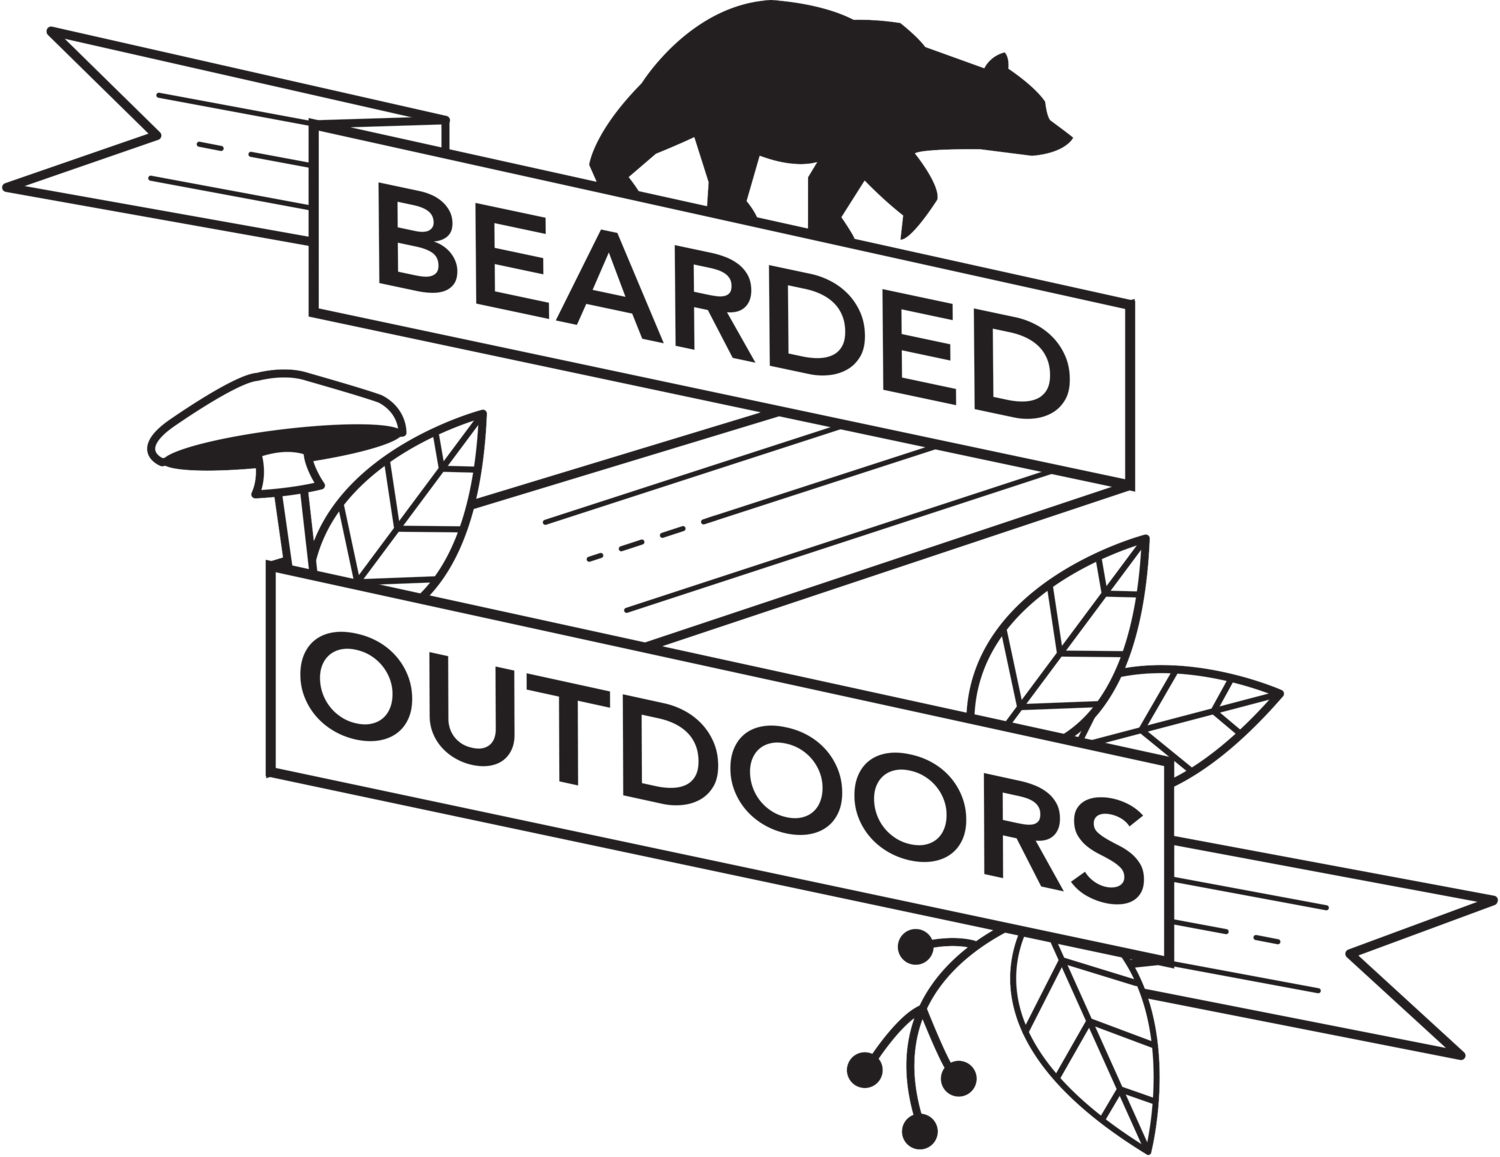 Bearded Outdoors